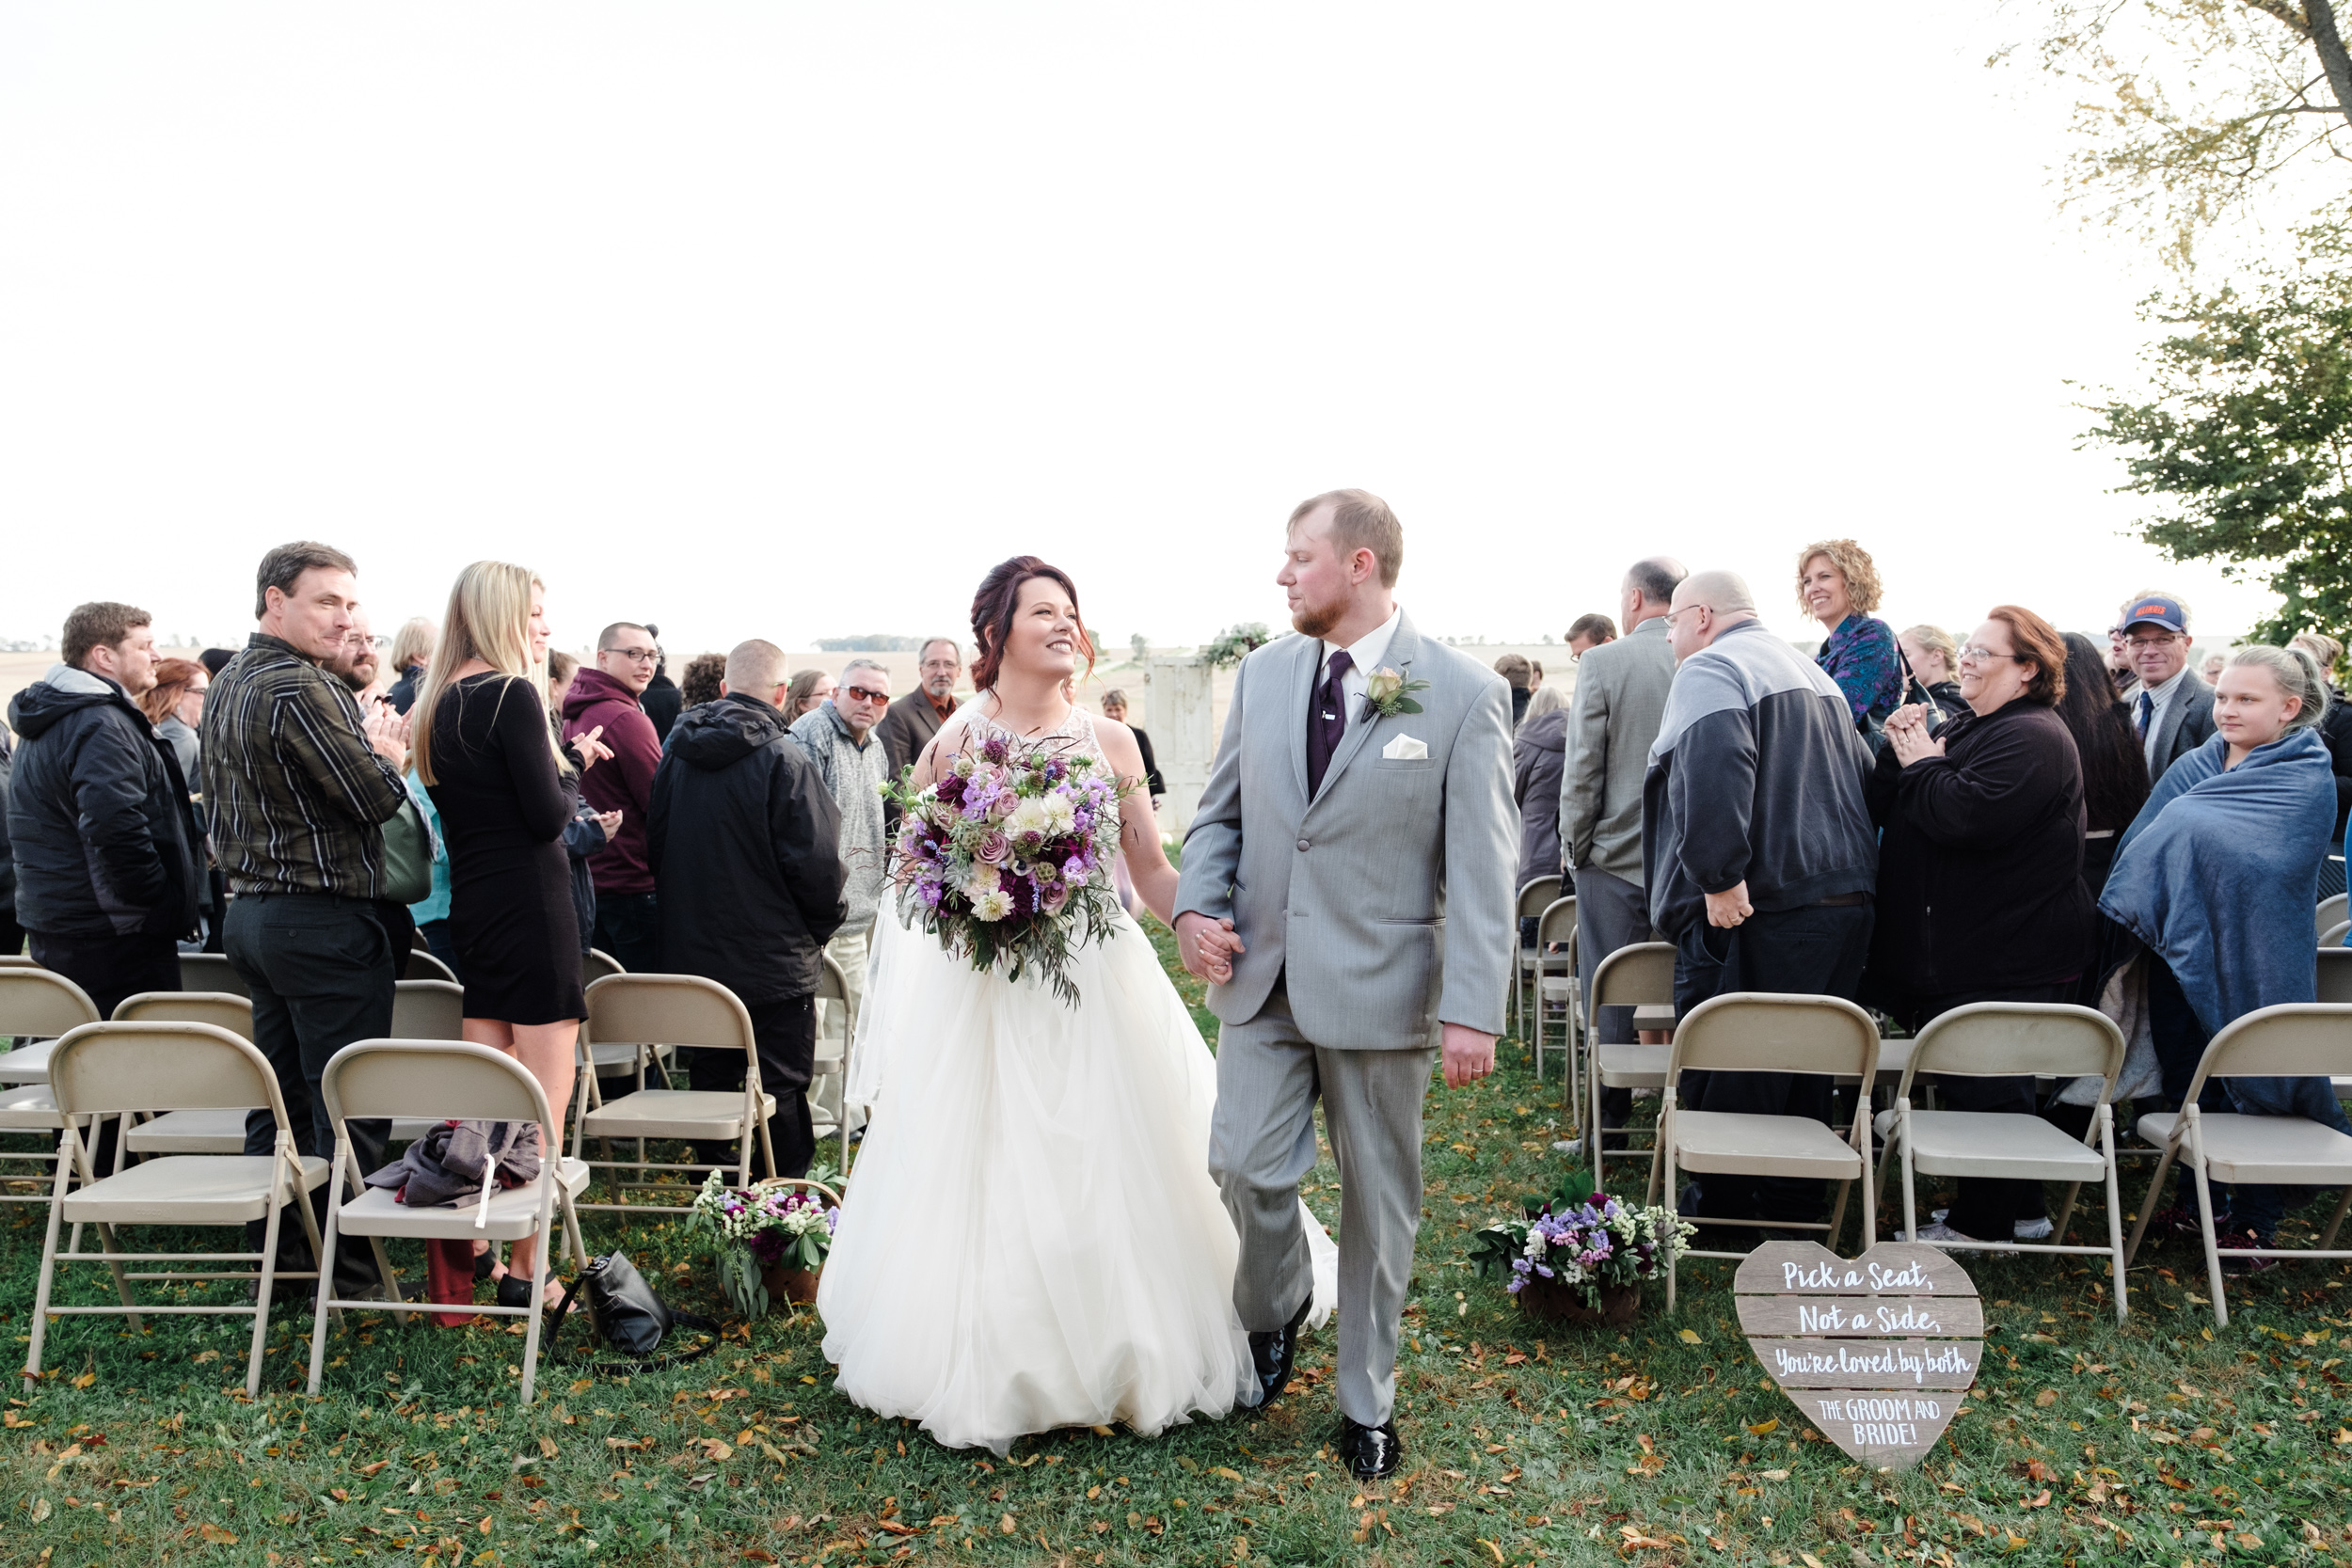 Andrea Caleb Happily Ever After Barn Wedding-21.jpg